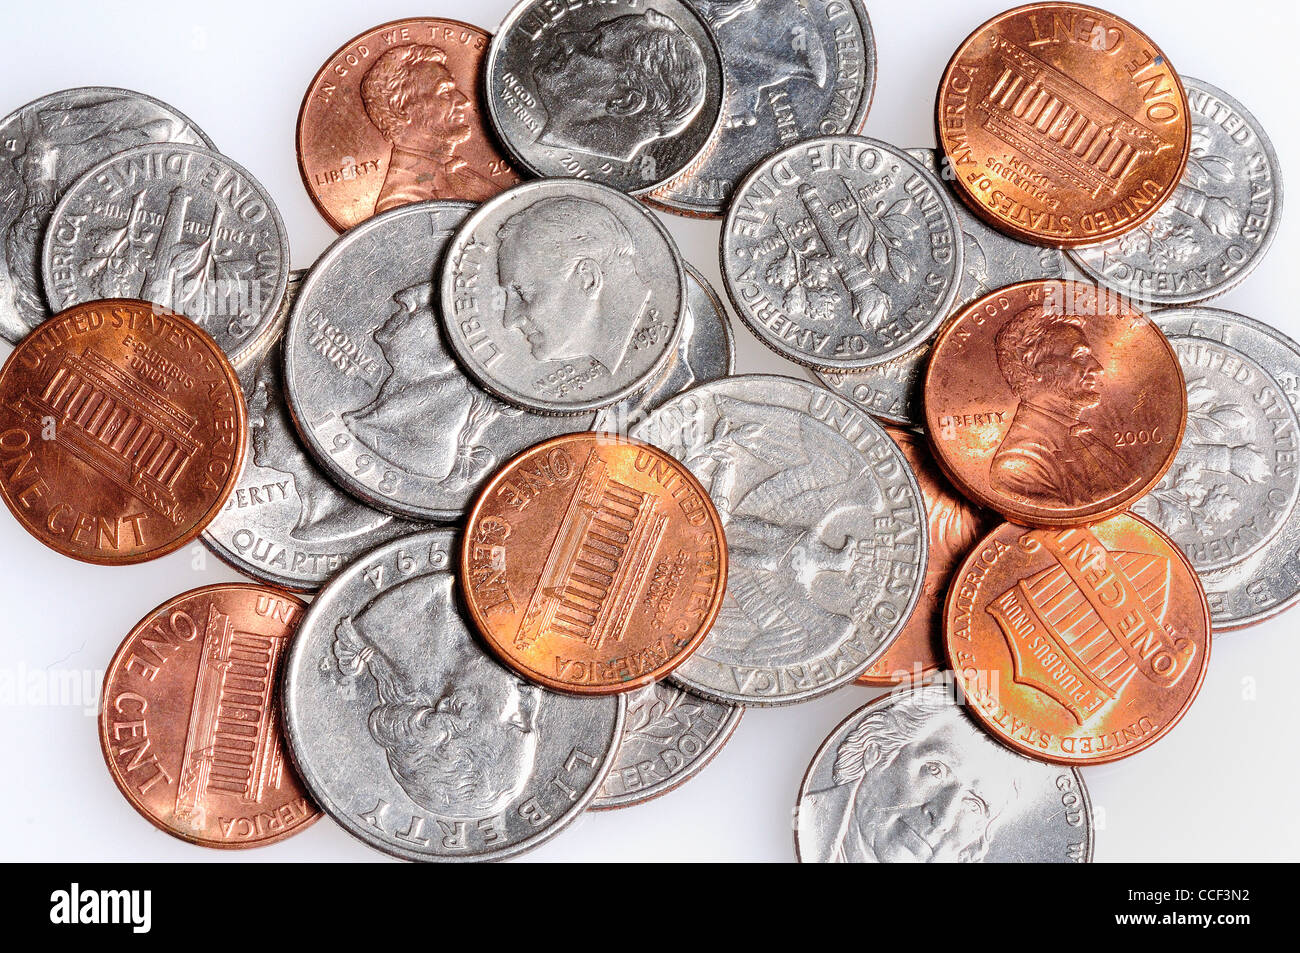 Worksheet Penny Nickel Dime Quarter